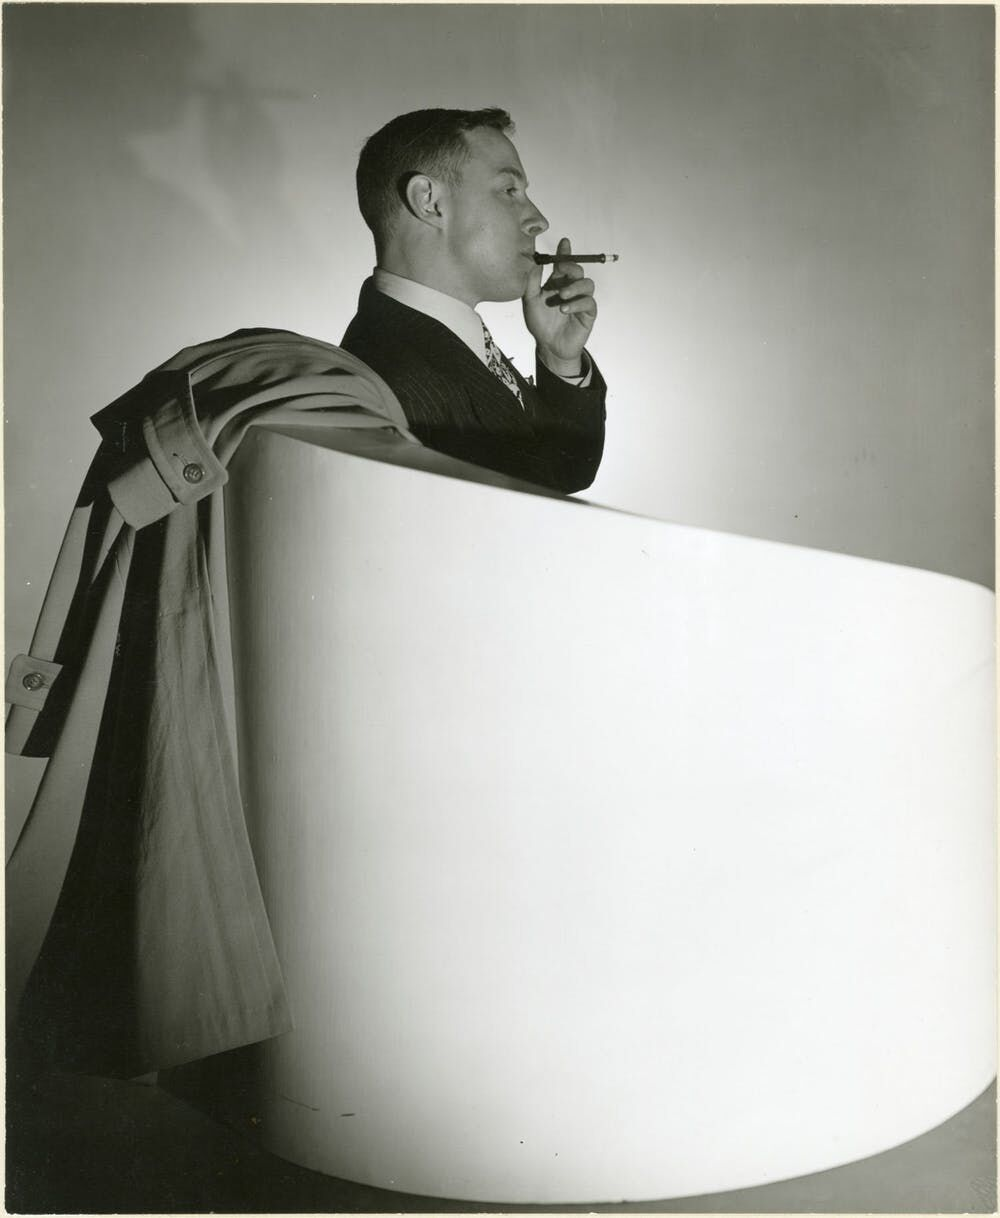 George Platt Lynes's 1944 portrait of writer Tennessee Williams.Gelatin silver print, 7-3/8 × 9 in. From the Collections of the Kinsey Institute, Indiana University. © Estate of George Platt Lynes.